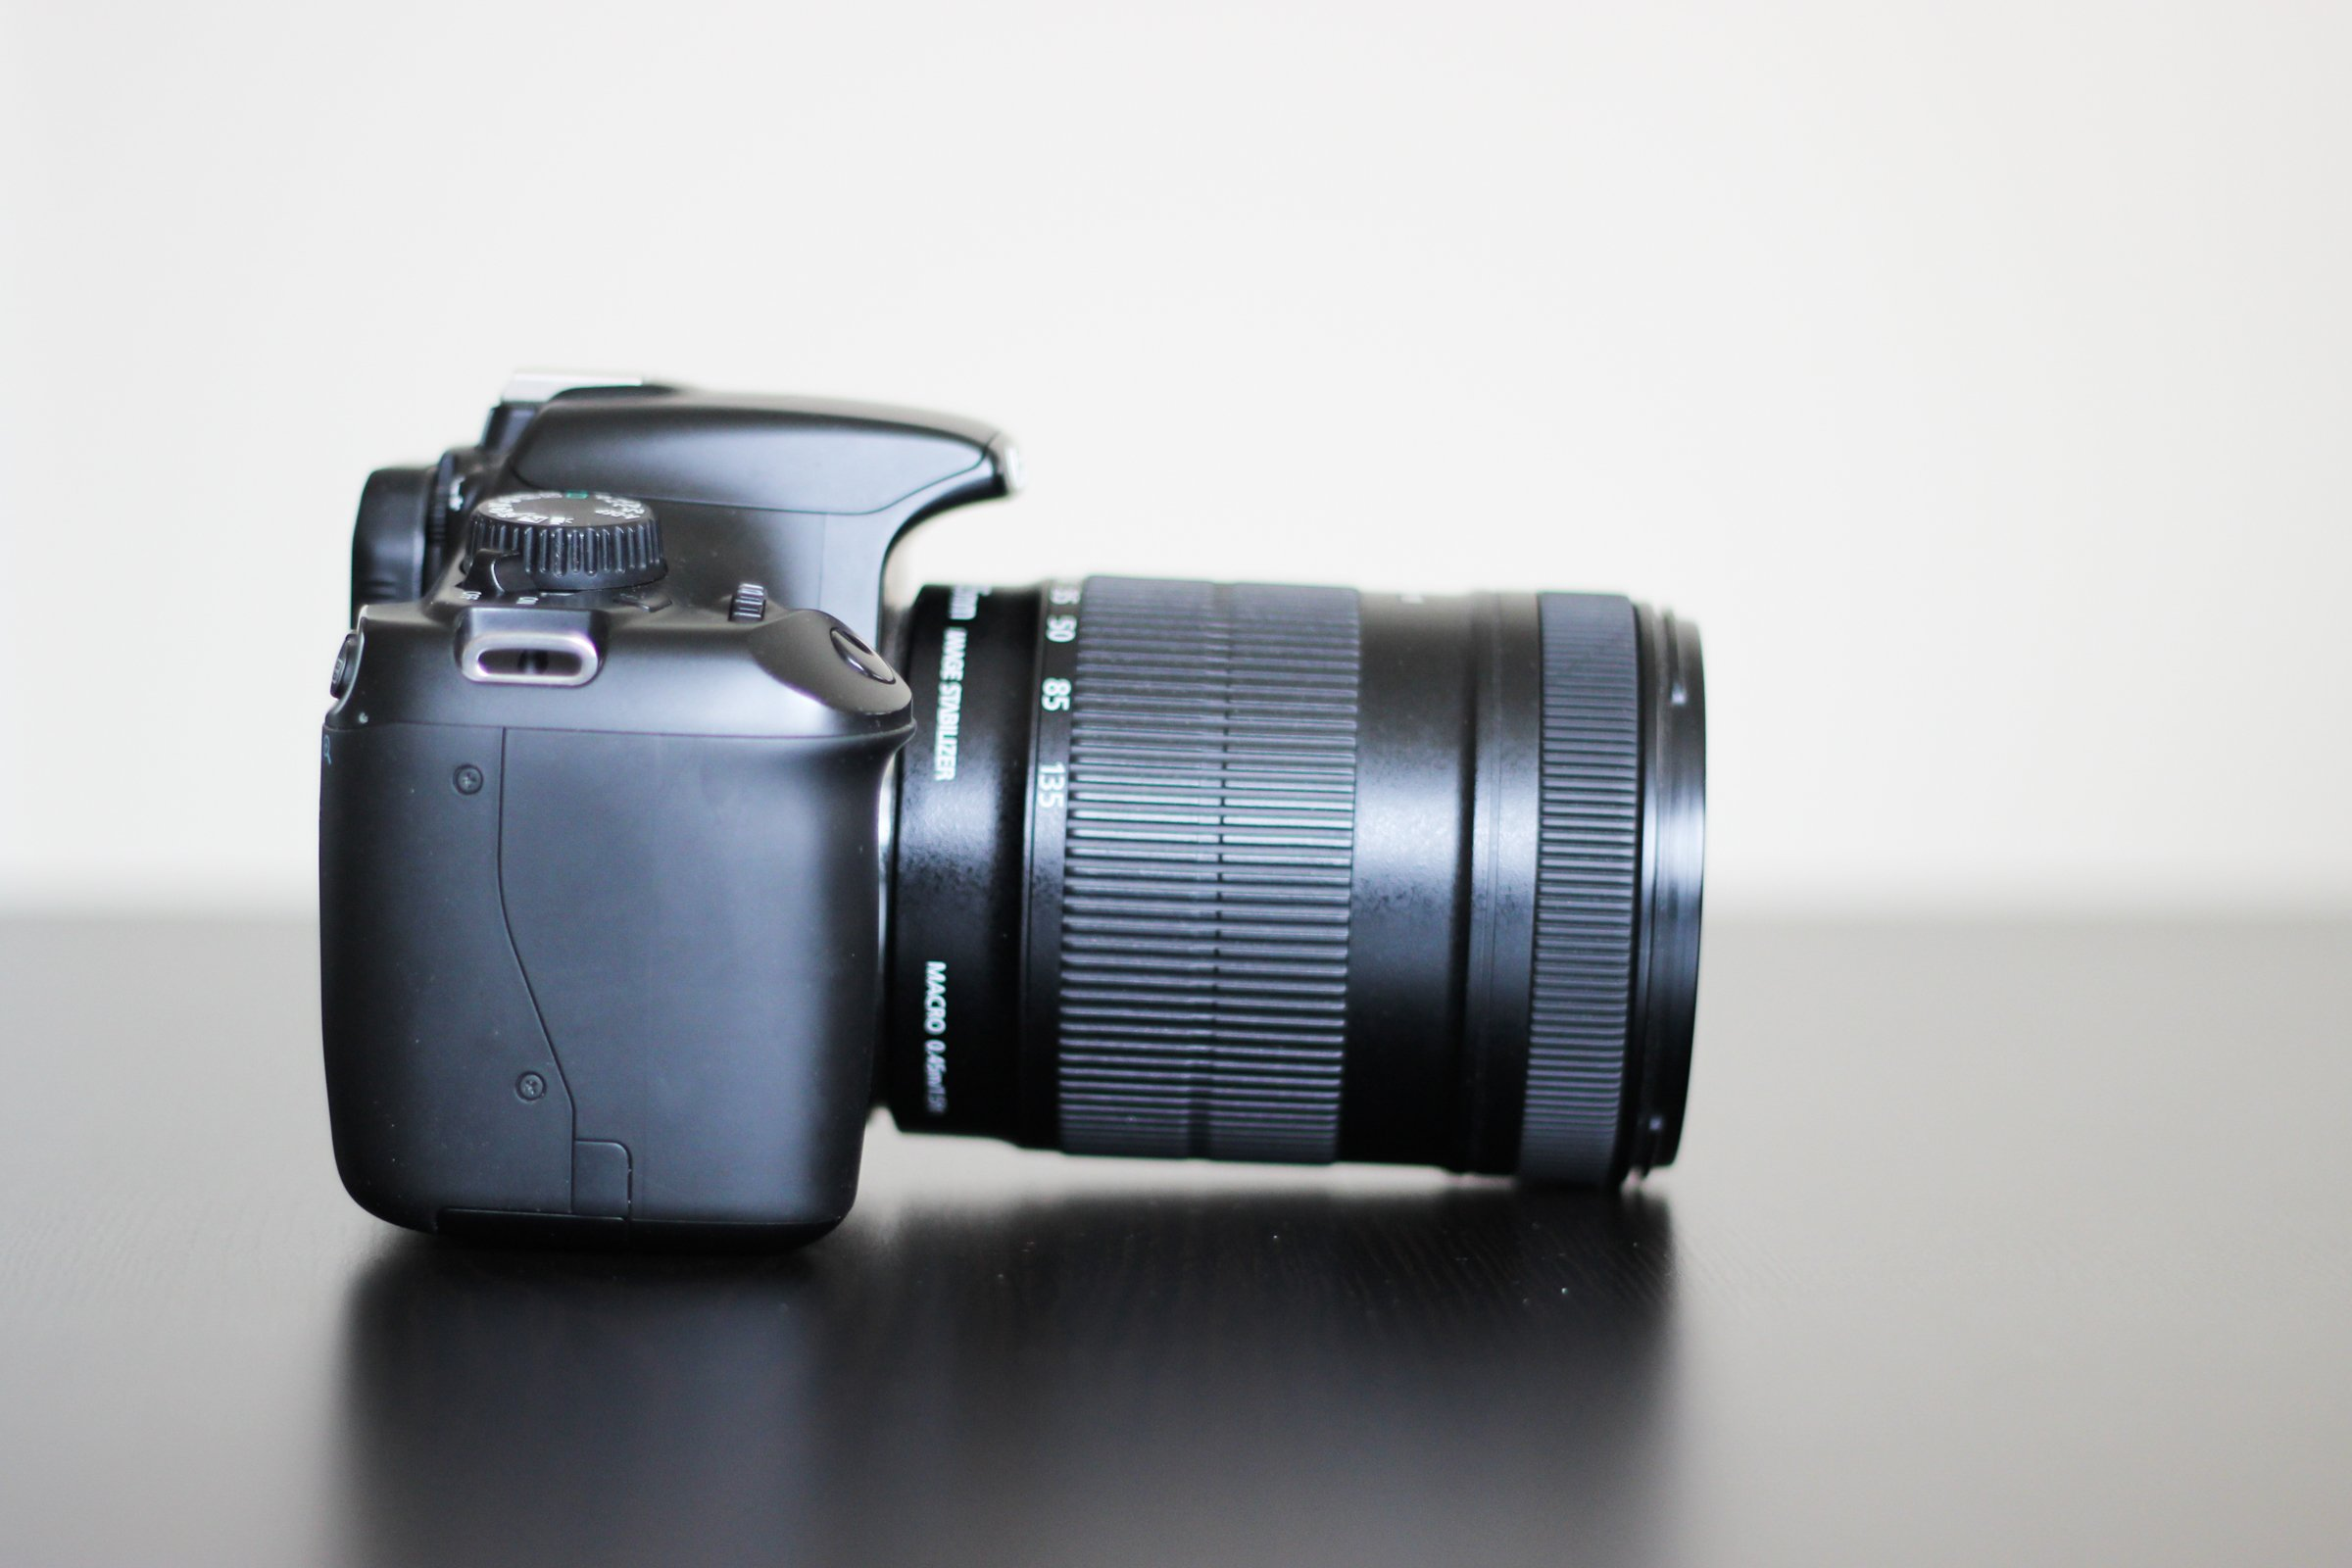 Side View of DSLR Camera with Zoom Lens